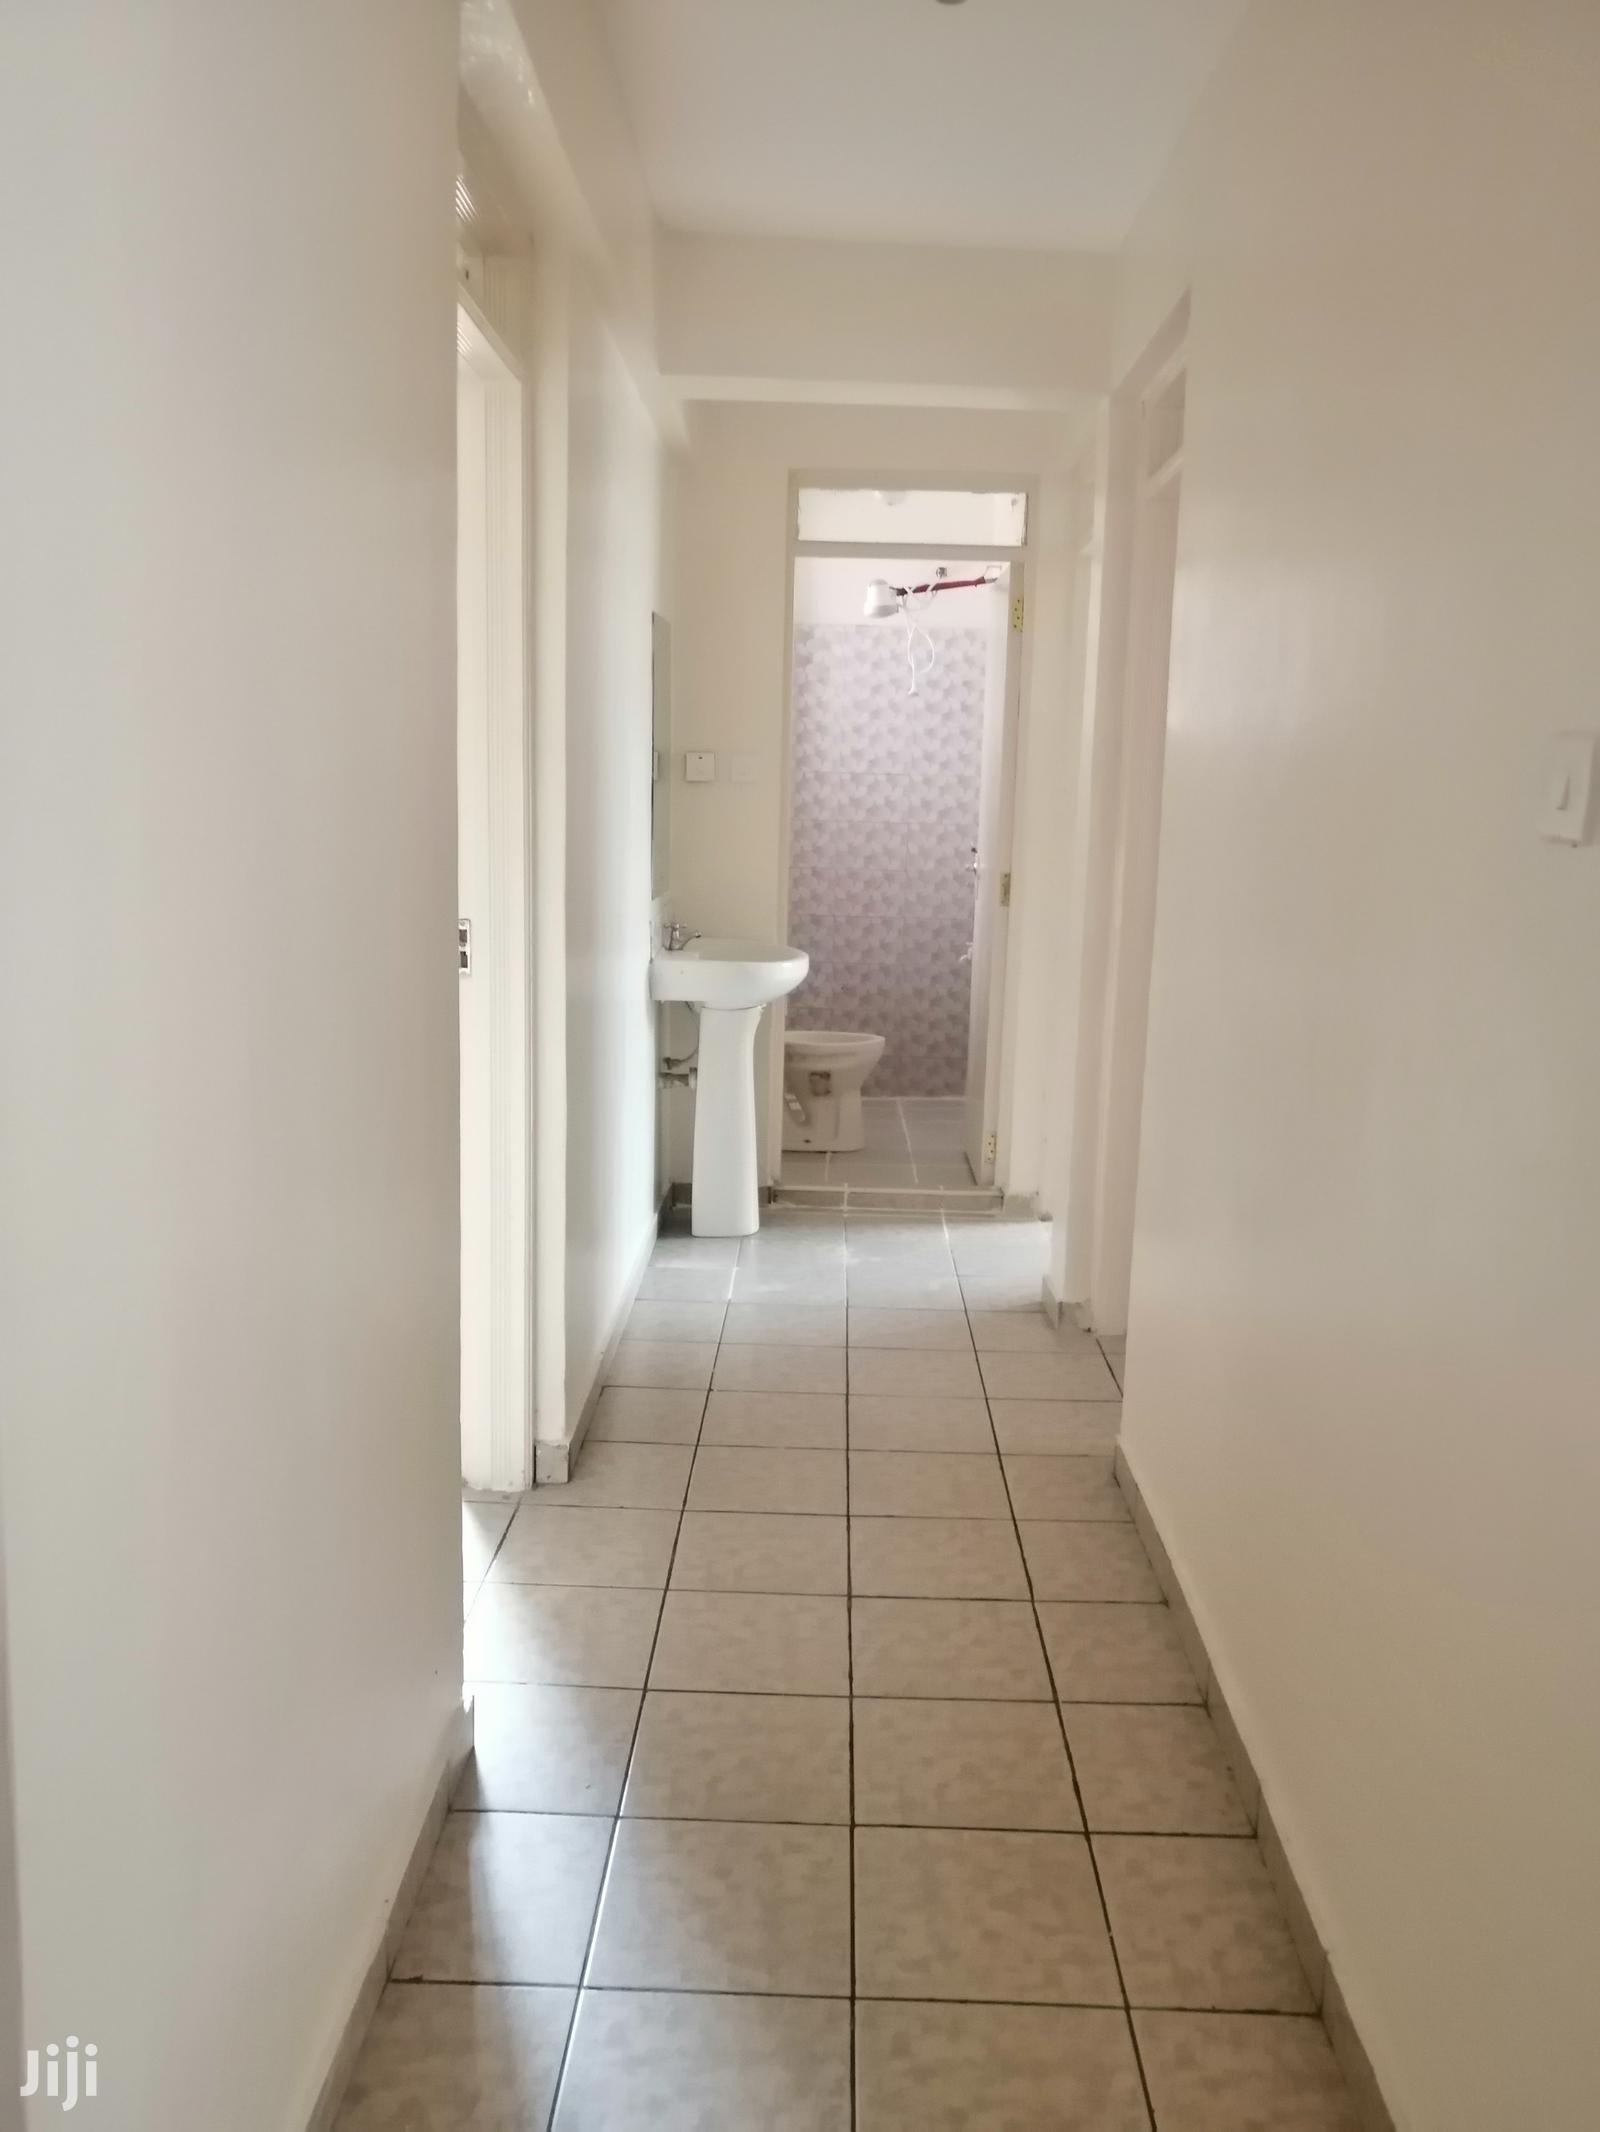 2 Bedroom Master Ensuite Apartment for Rent Near Thorntree   Houses & Apartments For Rent for sale in Ongata Rongai, Kajiado, Kenya